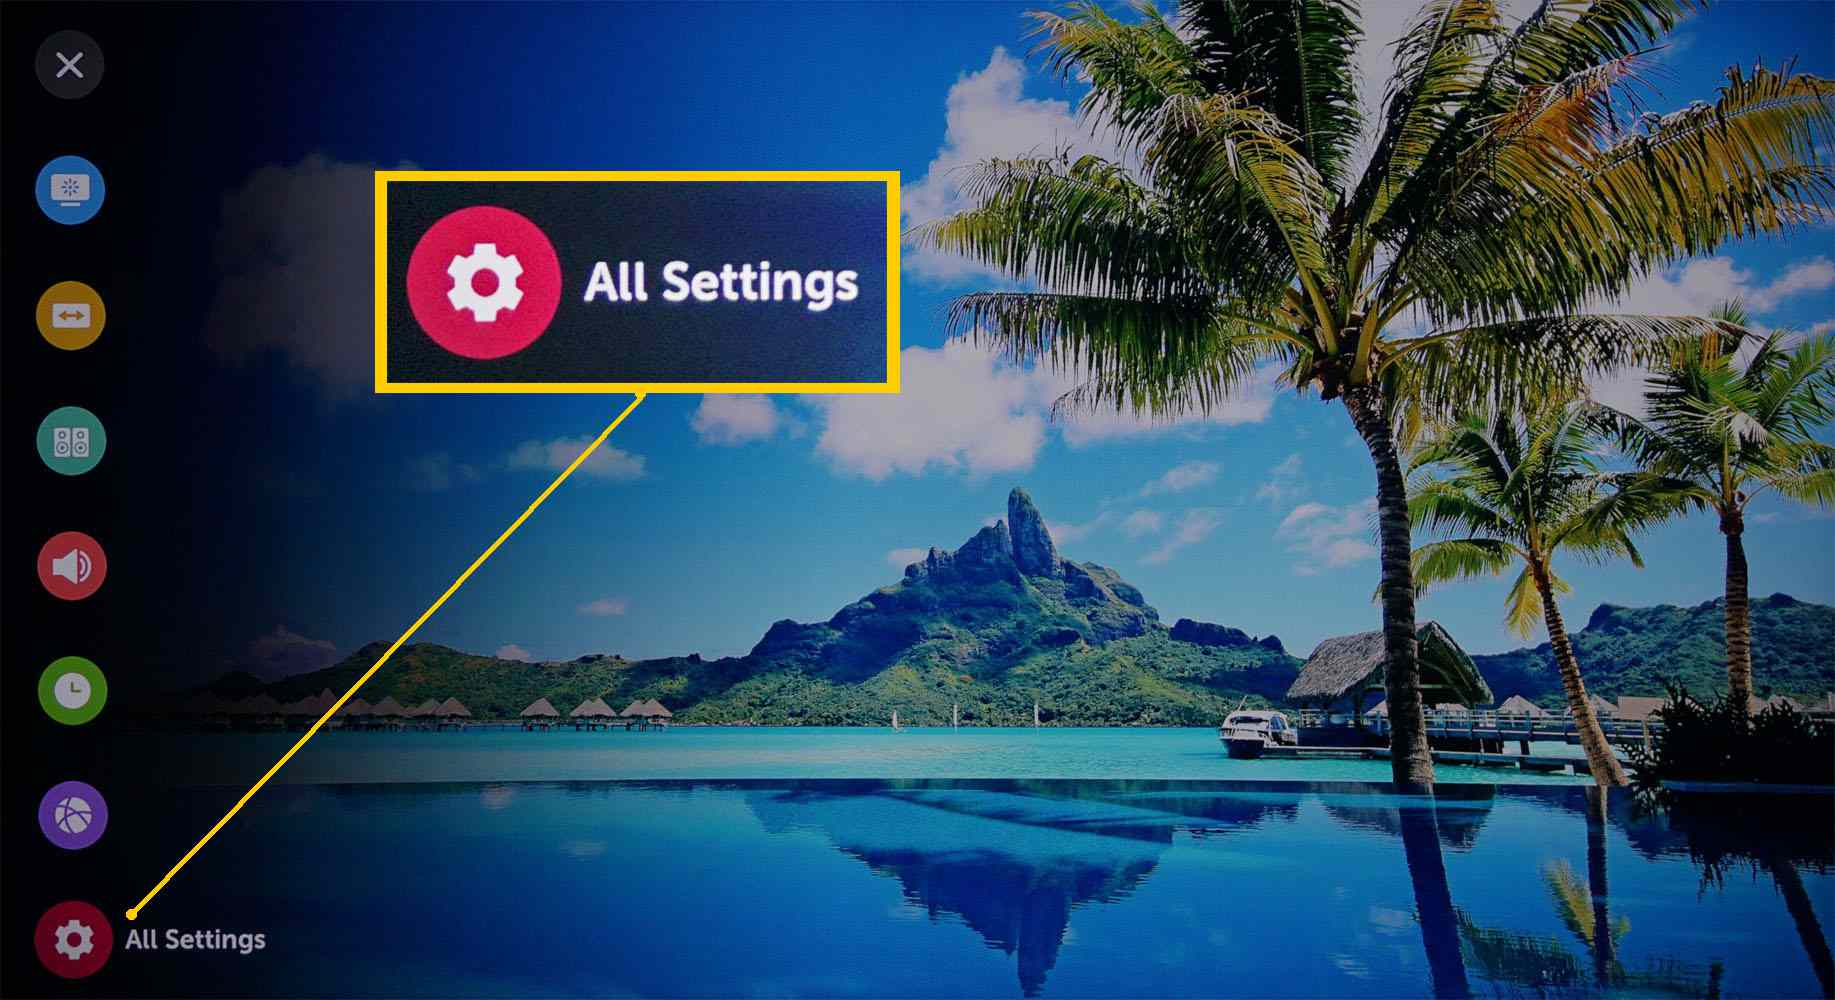 LG 4K Ultra HD TV – Home Page – All Settings Selected